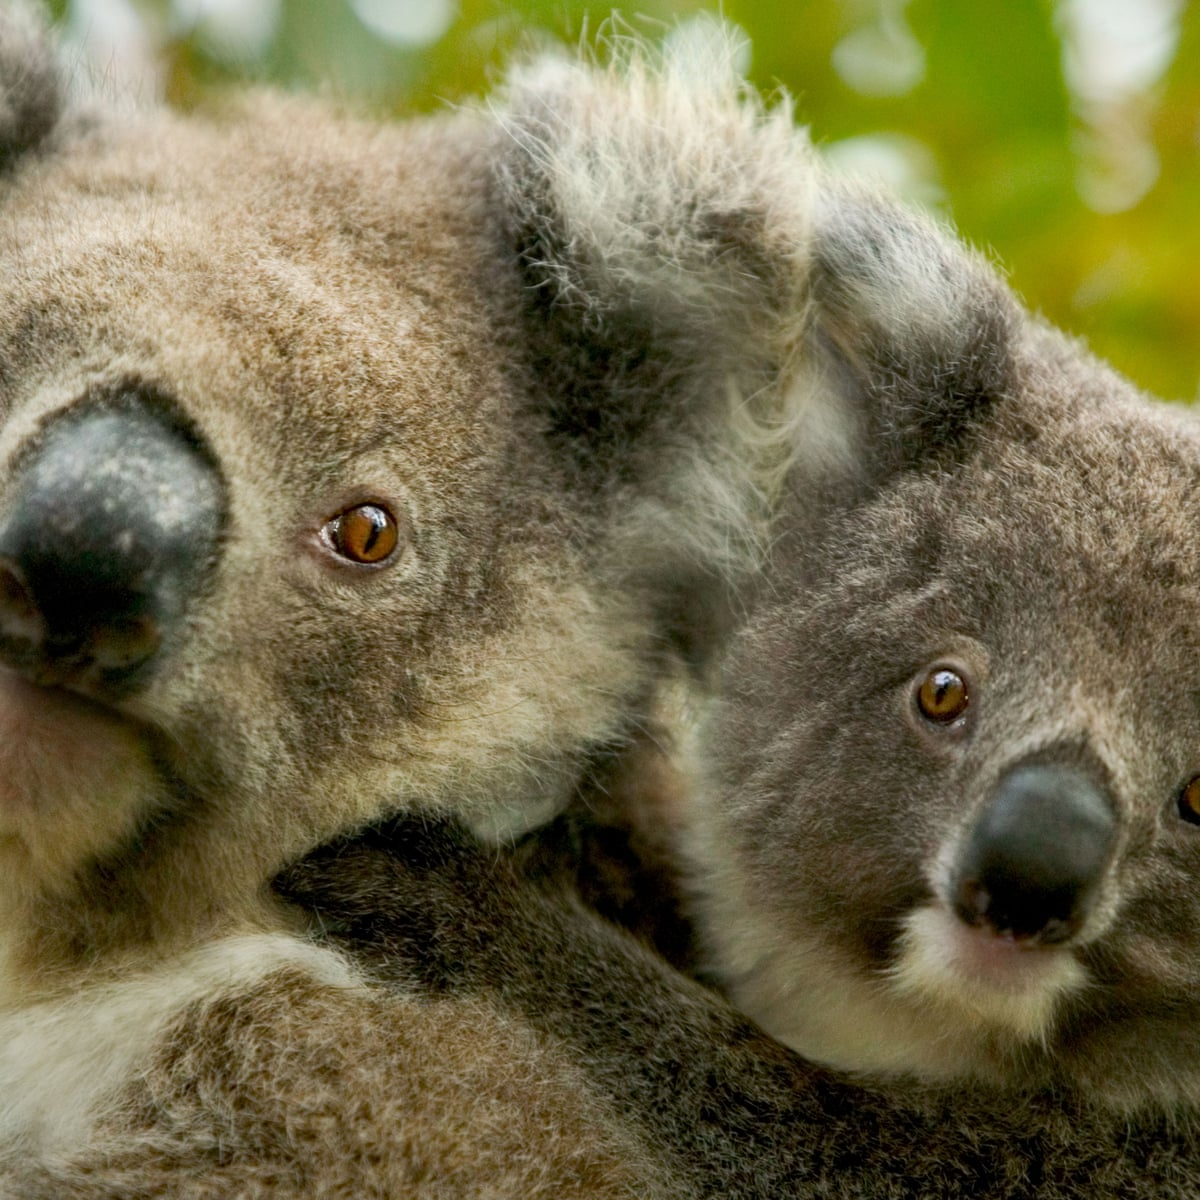 Koala And Kangaroo Culling Considered As Numbers Become Overabundant Wildlife The Guardian